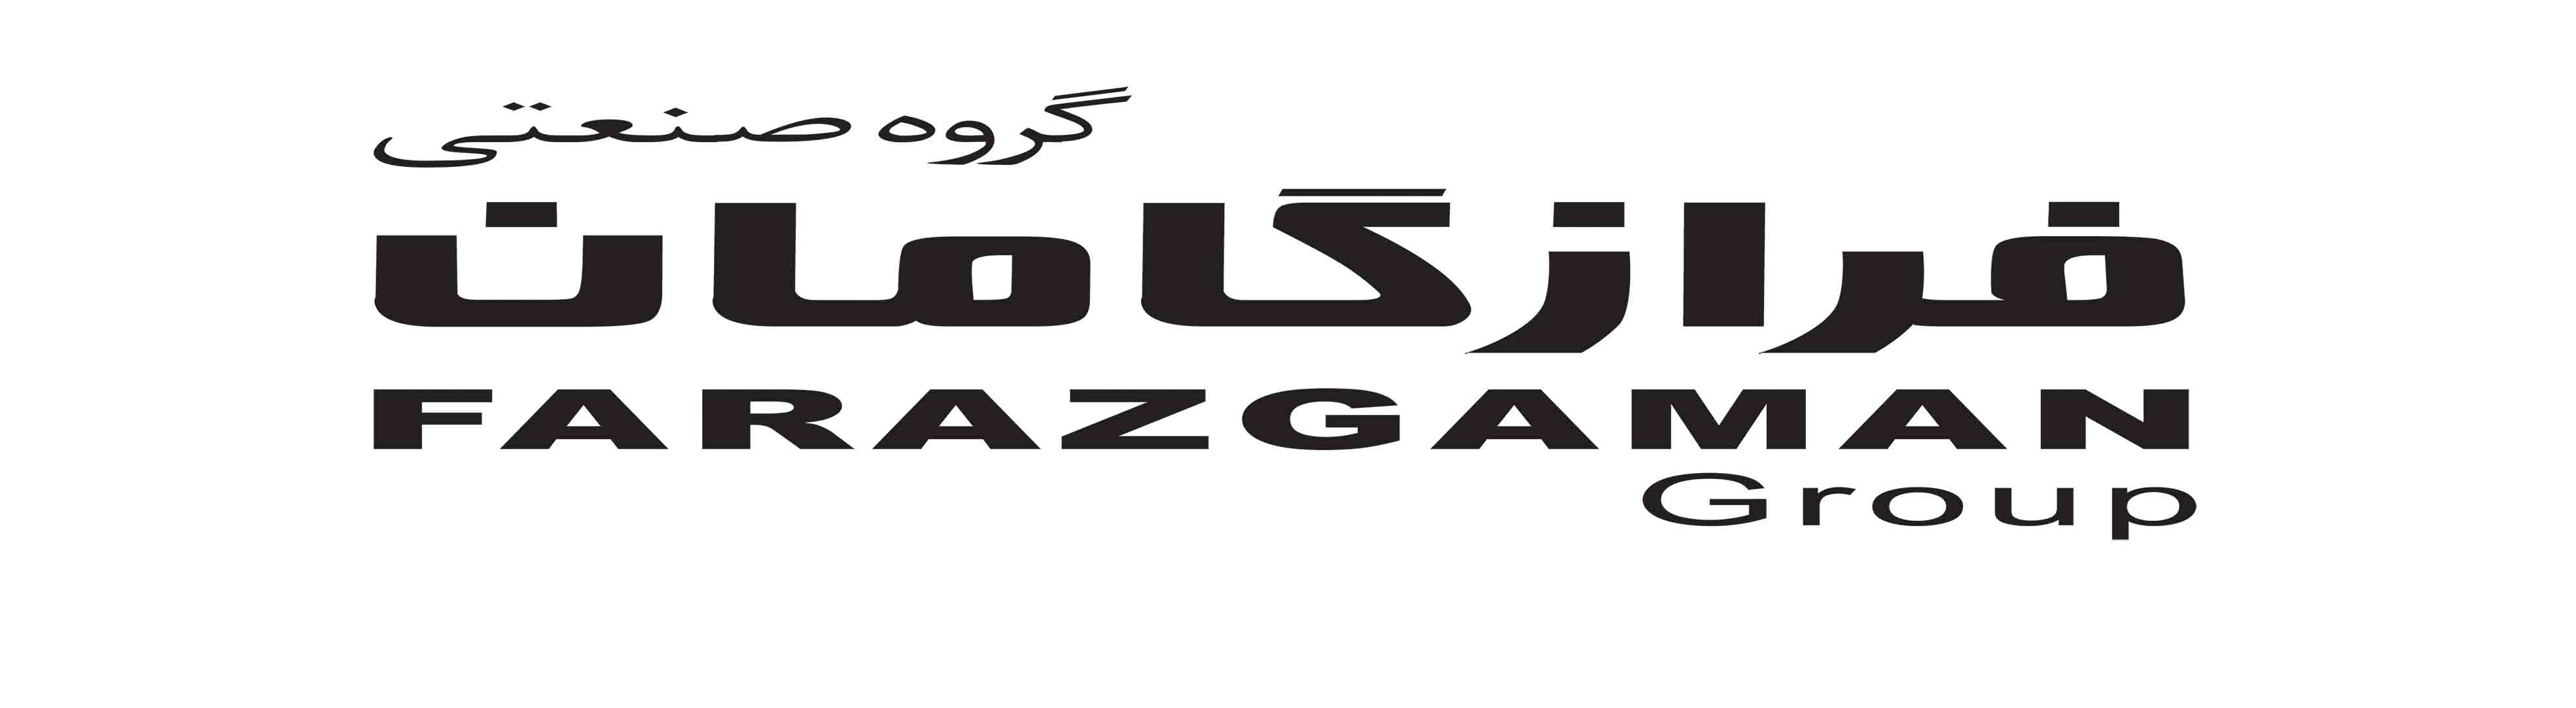 Farazgaman-Group